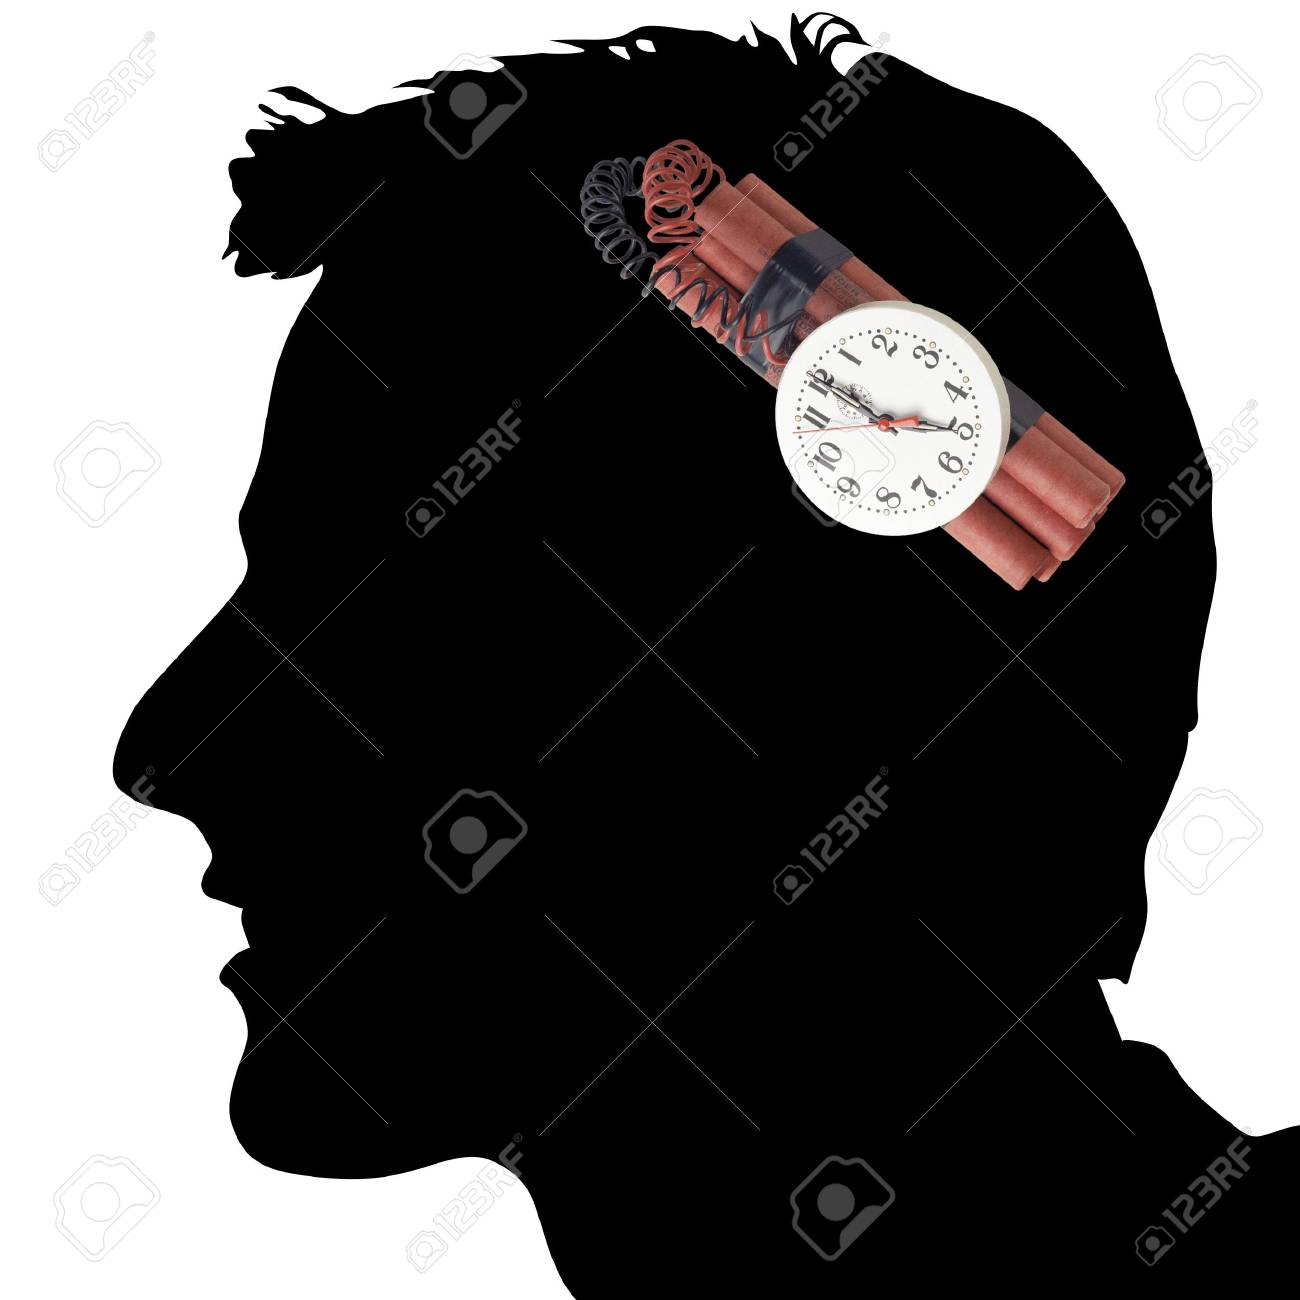 Illustration of a dangerous dynamite in a head at the man Stock Illustration - 6015954